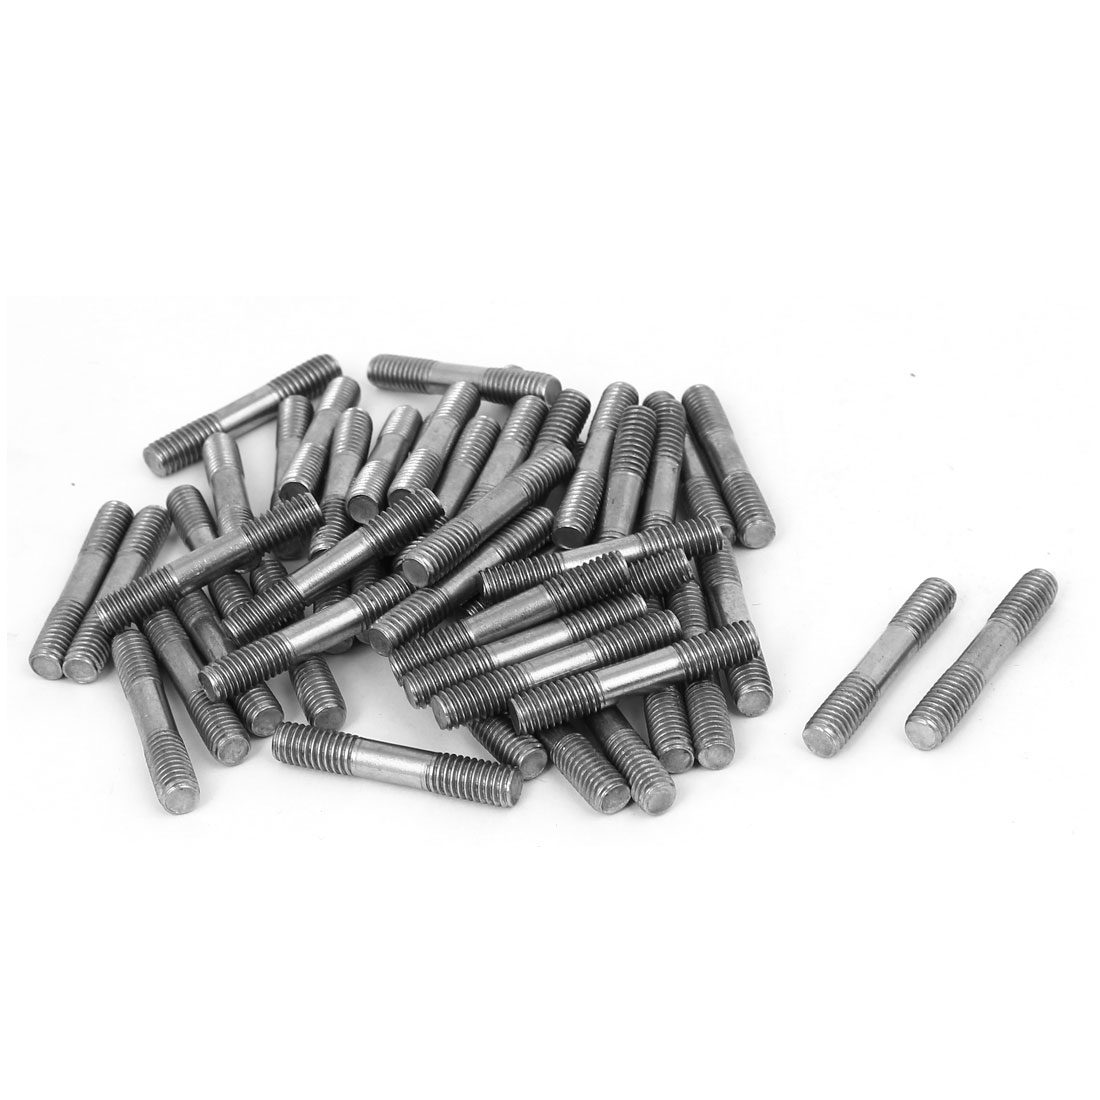 M6x35mm 304 Stainless Steel Double End Threaded Stud Screw Bolt 50pcs